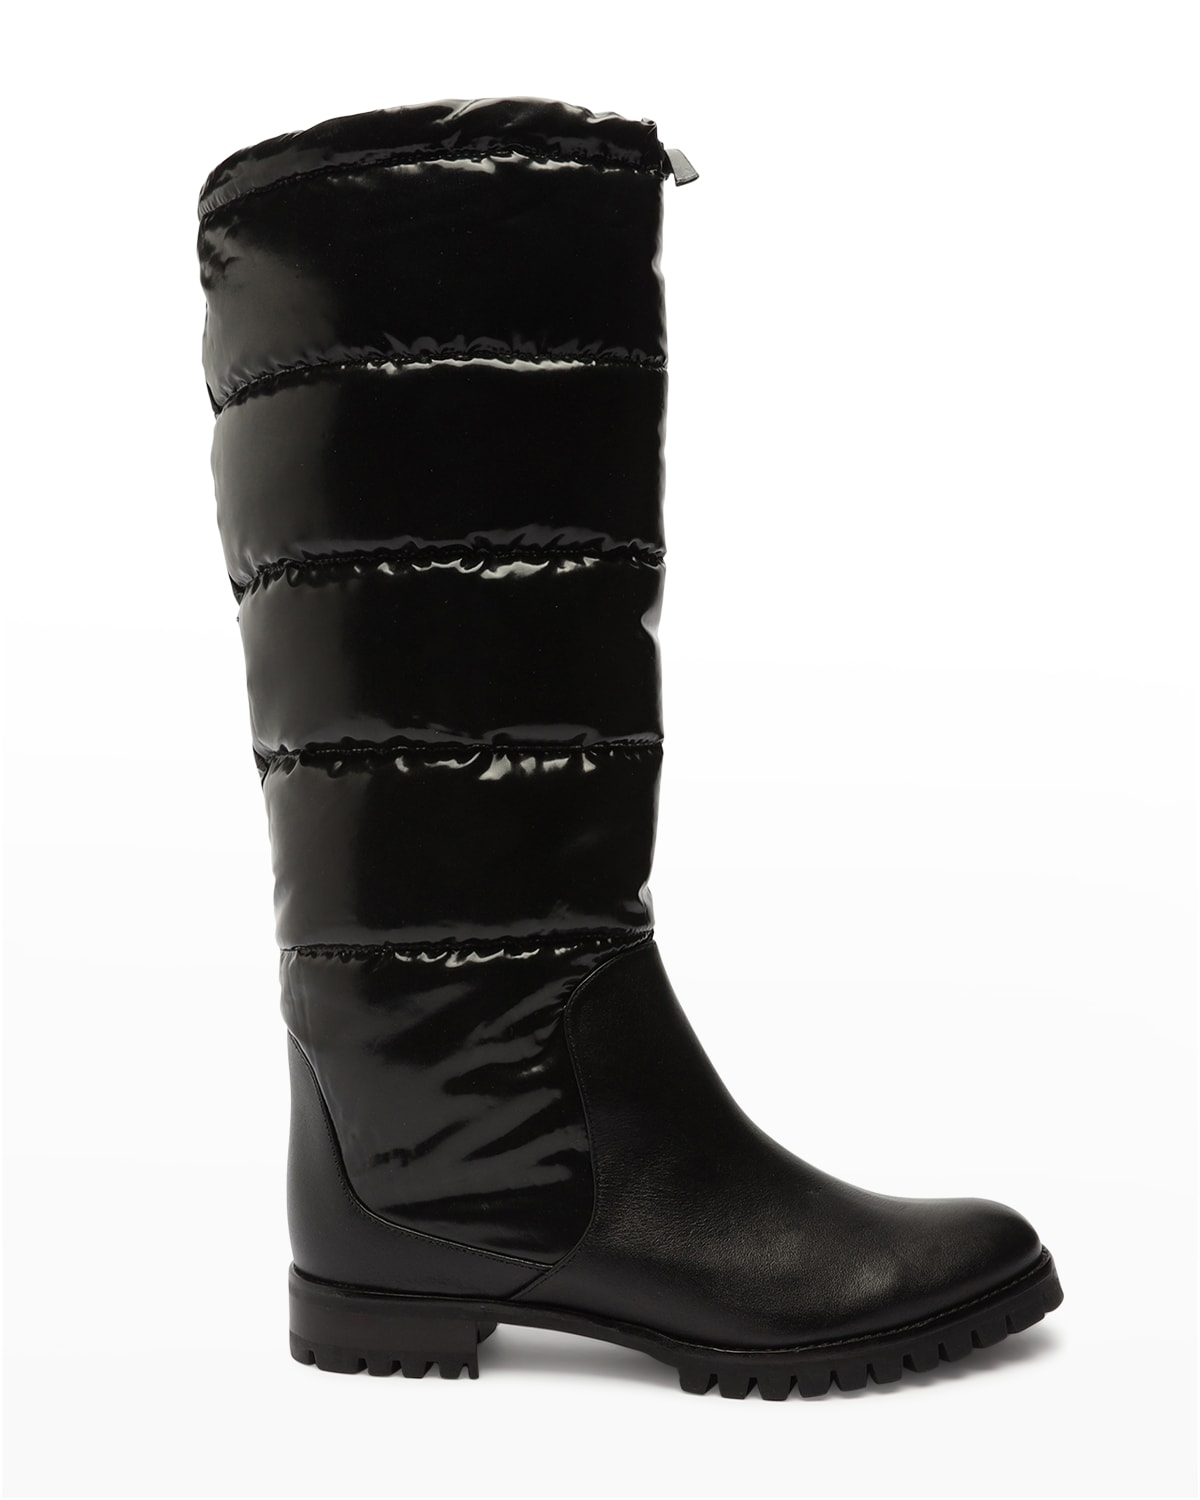 Clarita Puff Quilted Tall Boots